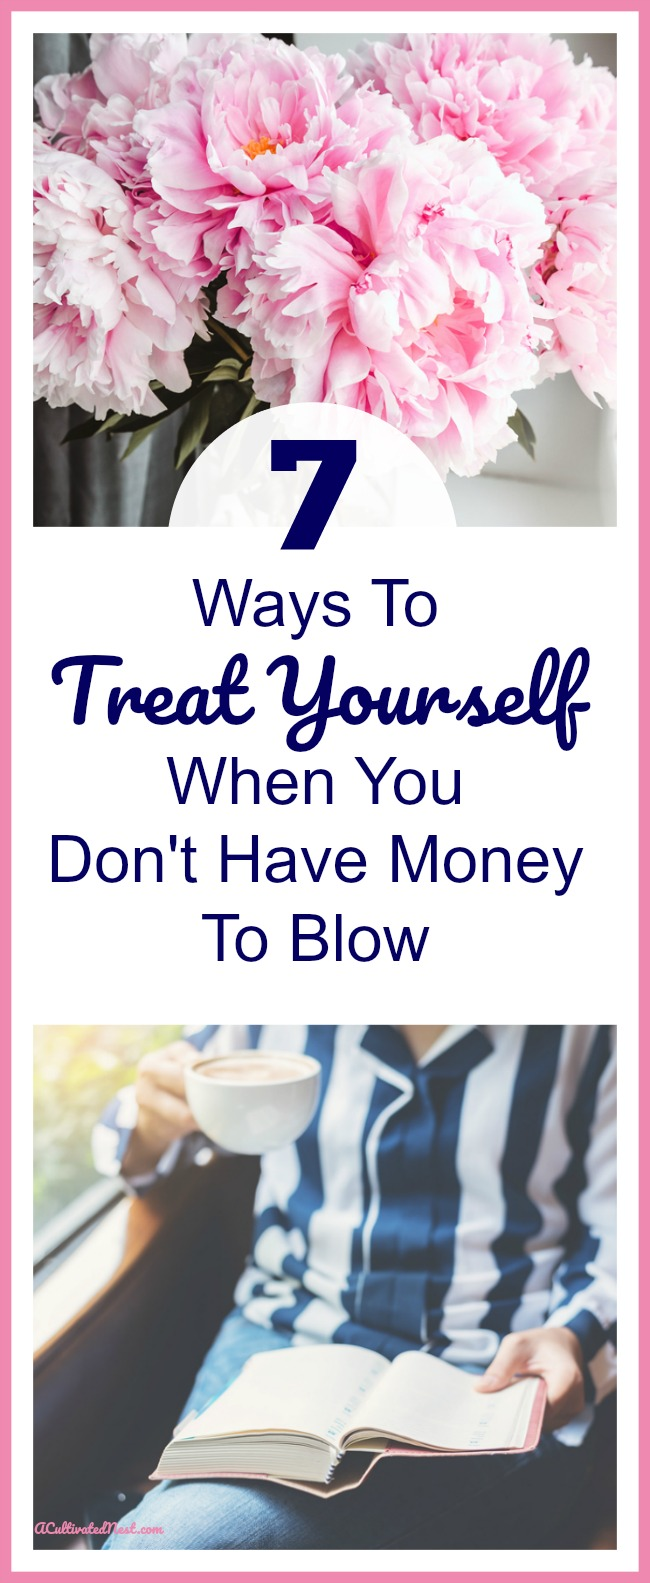 7 Ways To Treat Yourself- There are plenty of ways to pamper yourself that won't cost you a dime. Enjoy these 7 wonderful ways to treat yourself when you don't have money to blow! | frugal living, self-care, save money, how to treat yourself on a budget